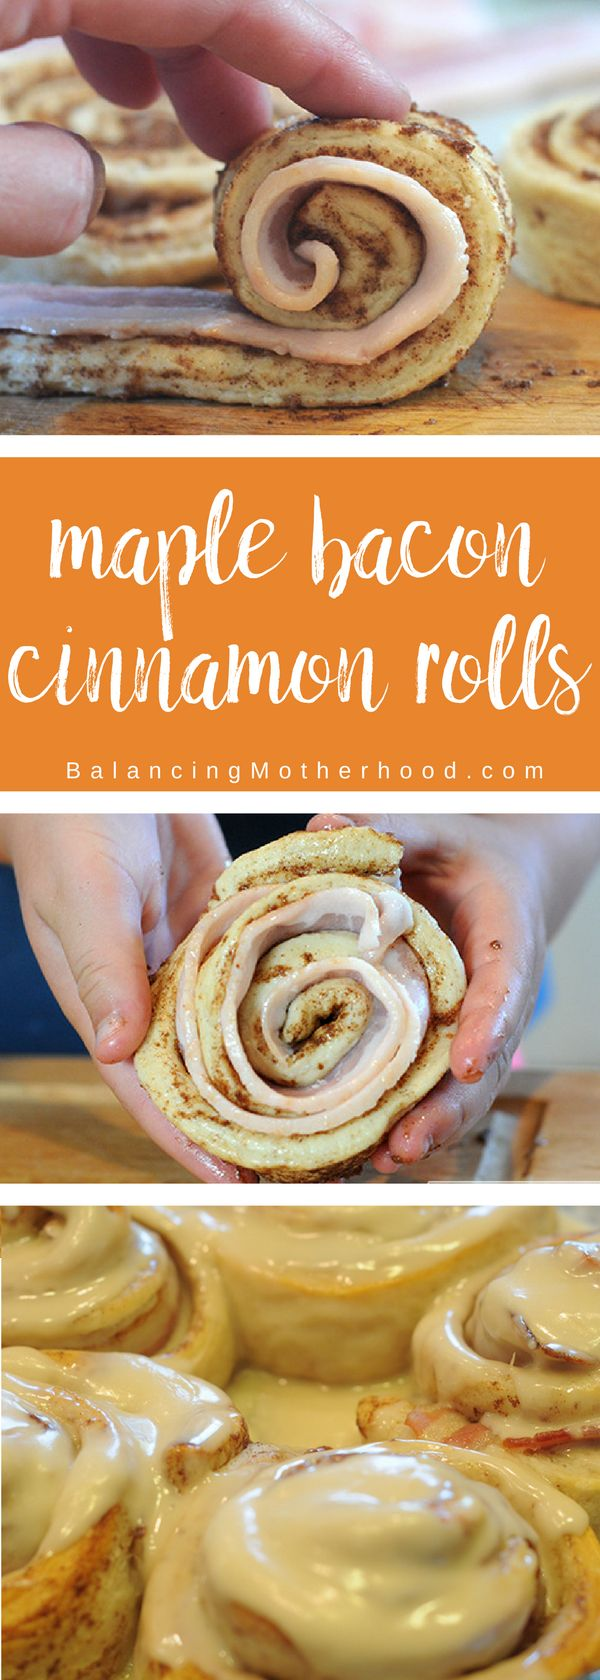 Make maple bacon cinnamon rolls in under 30 minutes! They are delicious with an amazing maple frosting that is super easy to make. These will be gone in minutes so you'd better eat one as soon as they come out of the oven! A great fall treat.